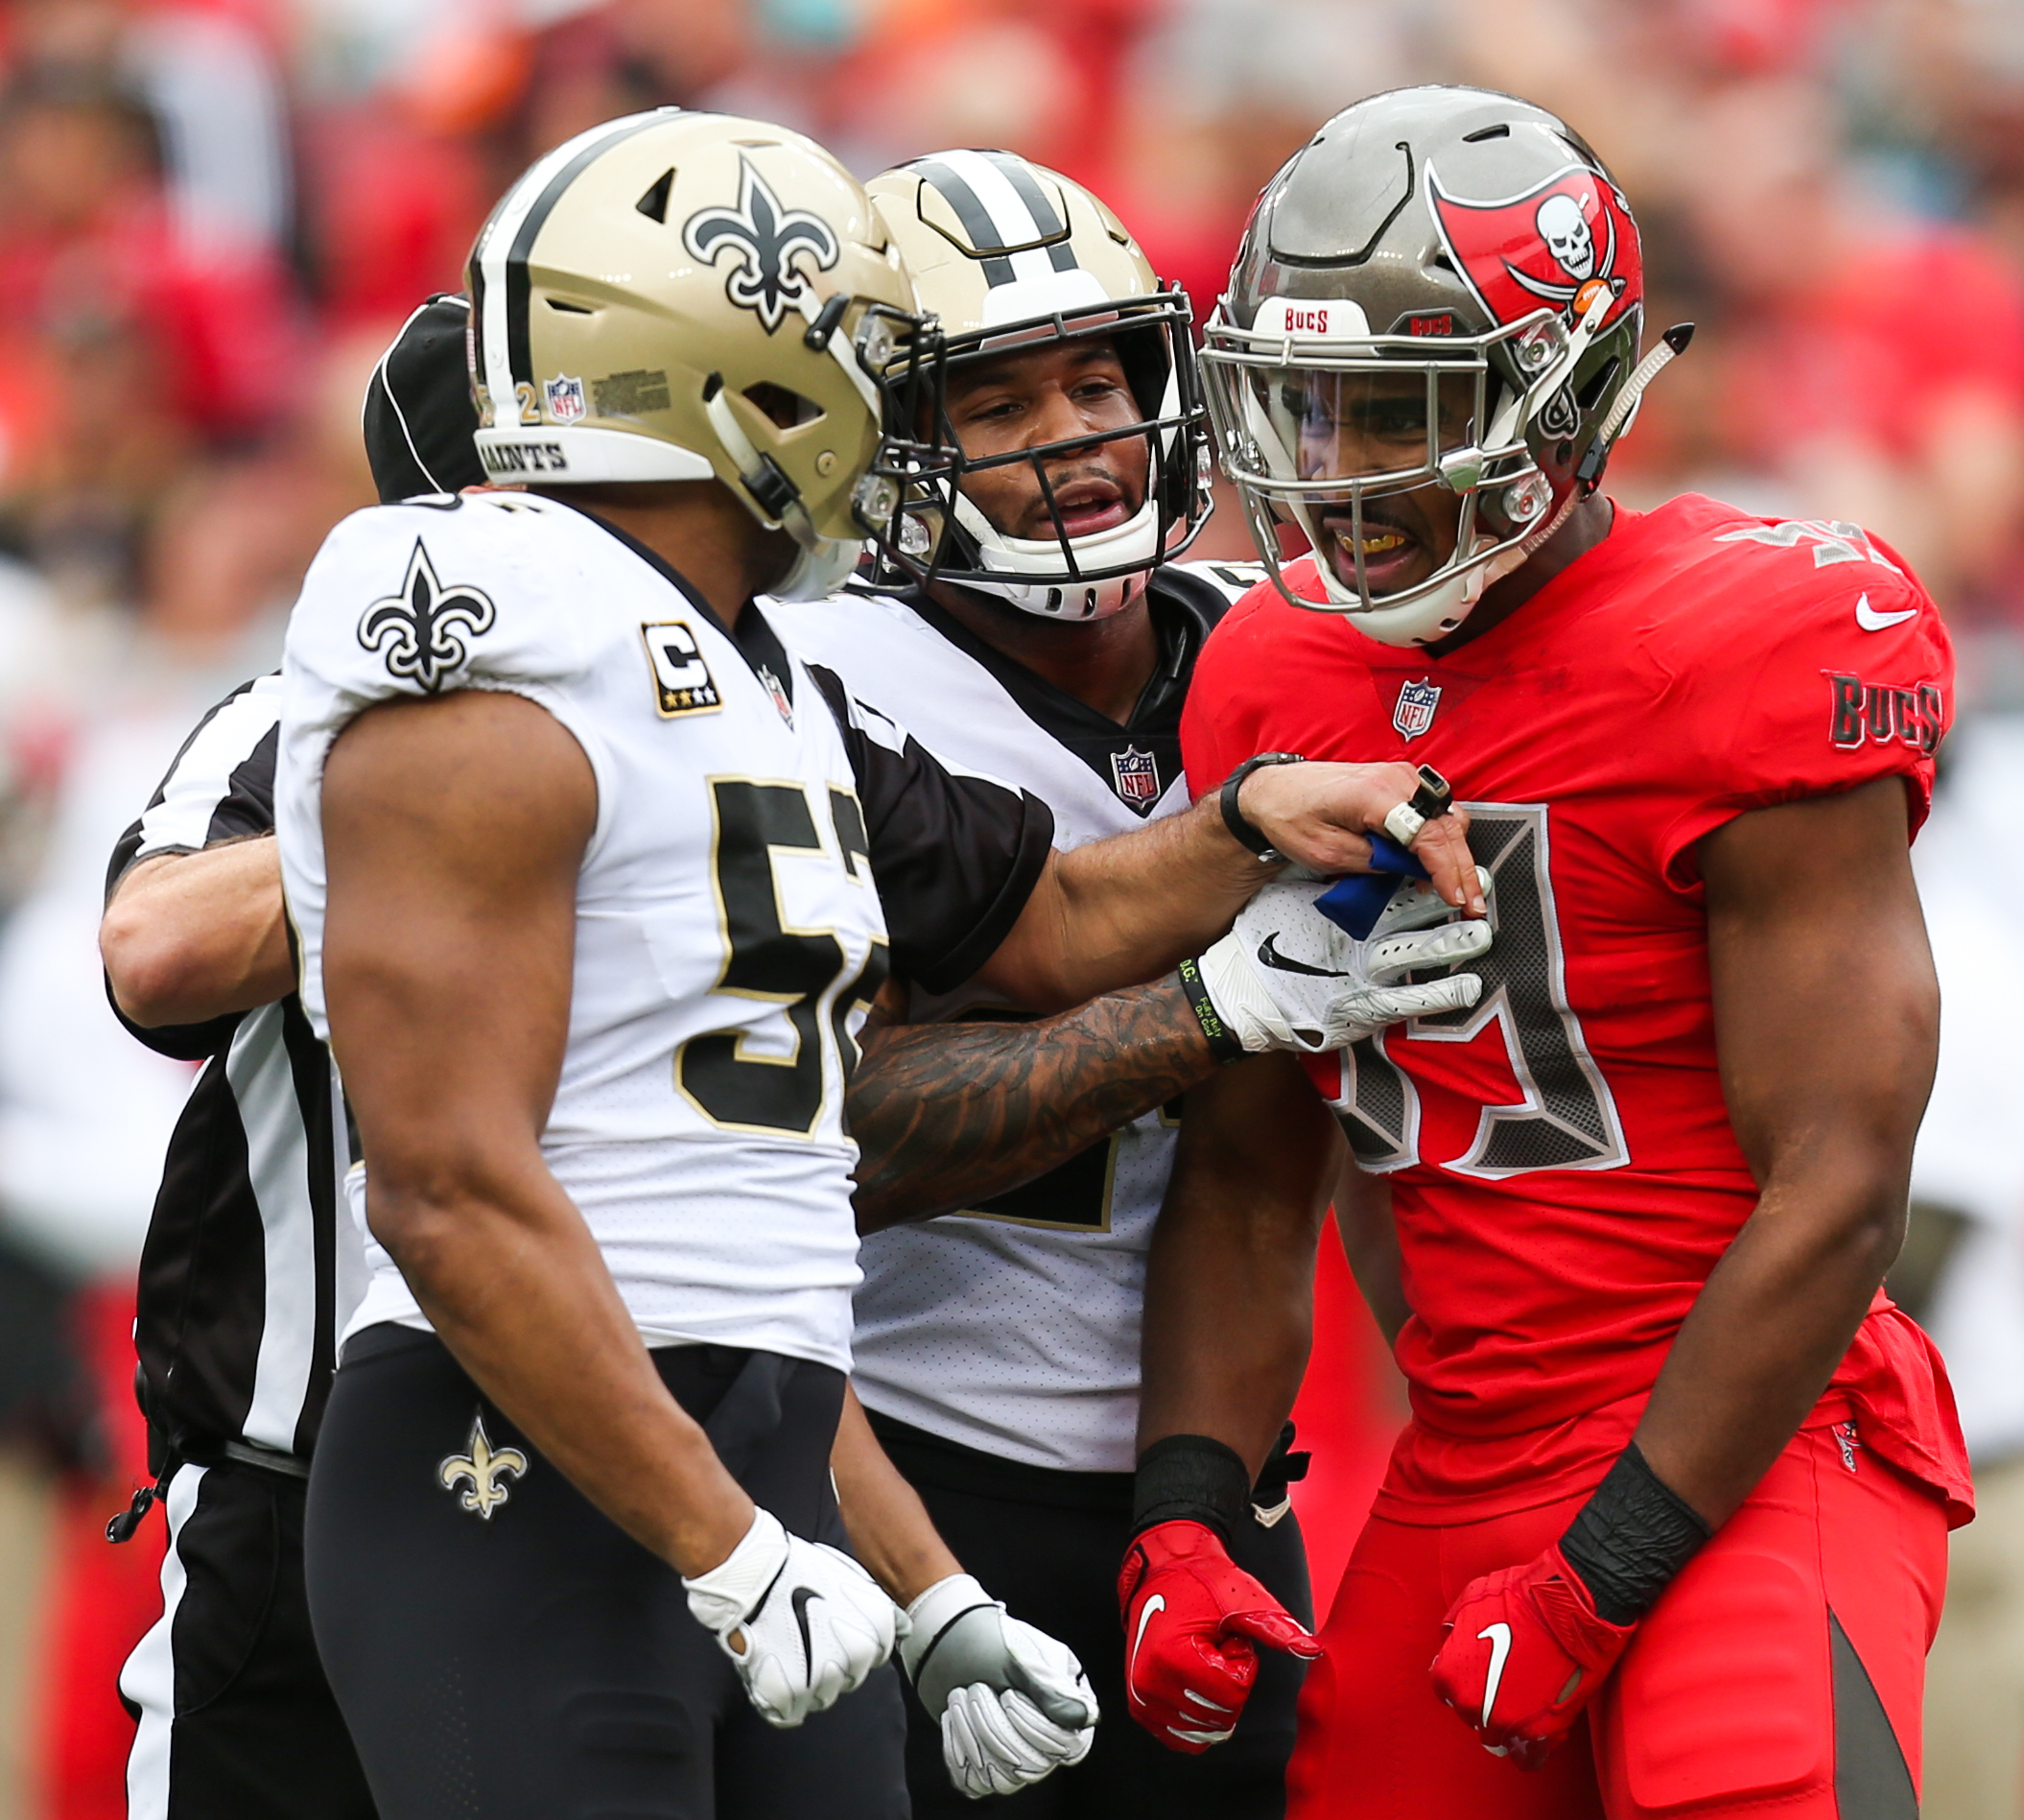 Tampa Bay Buccaneers linebacker Devante Bond (59) reacts toward New Orleans Saints linebacker Craig Robertson (52) after a play during the second quarter of the Tampa Bay Buccaneers game against the New Orleans Saint at Raymond James Stadium on December 9, 2018.